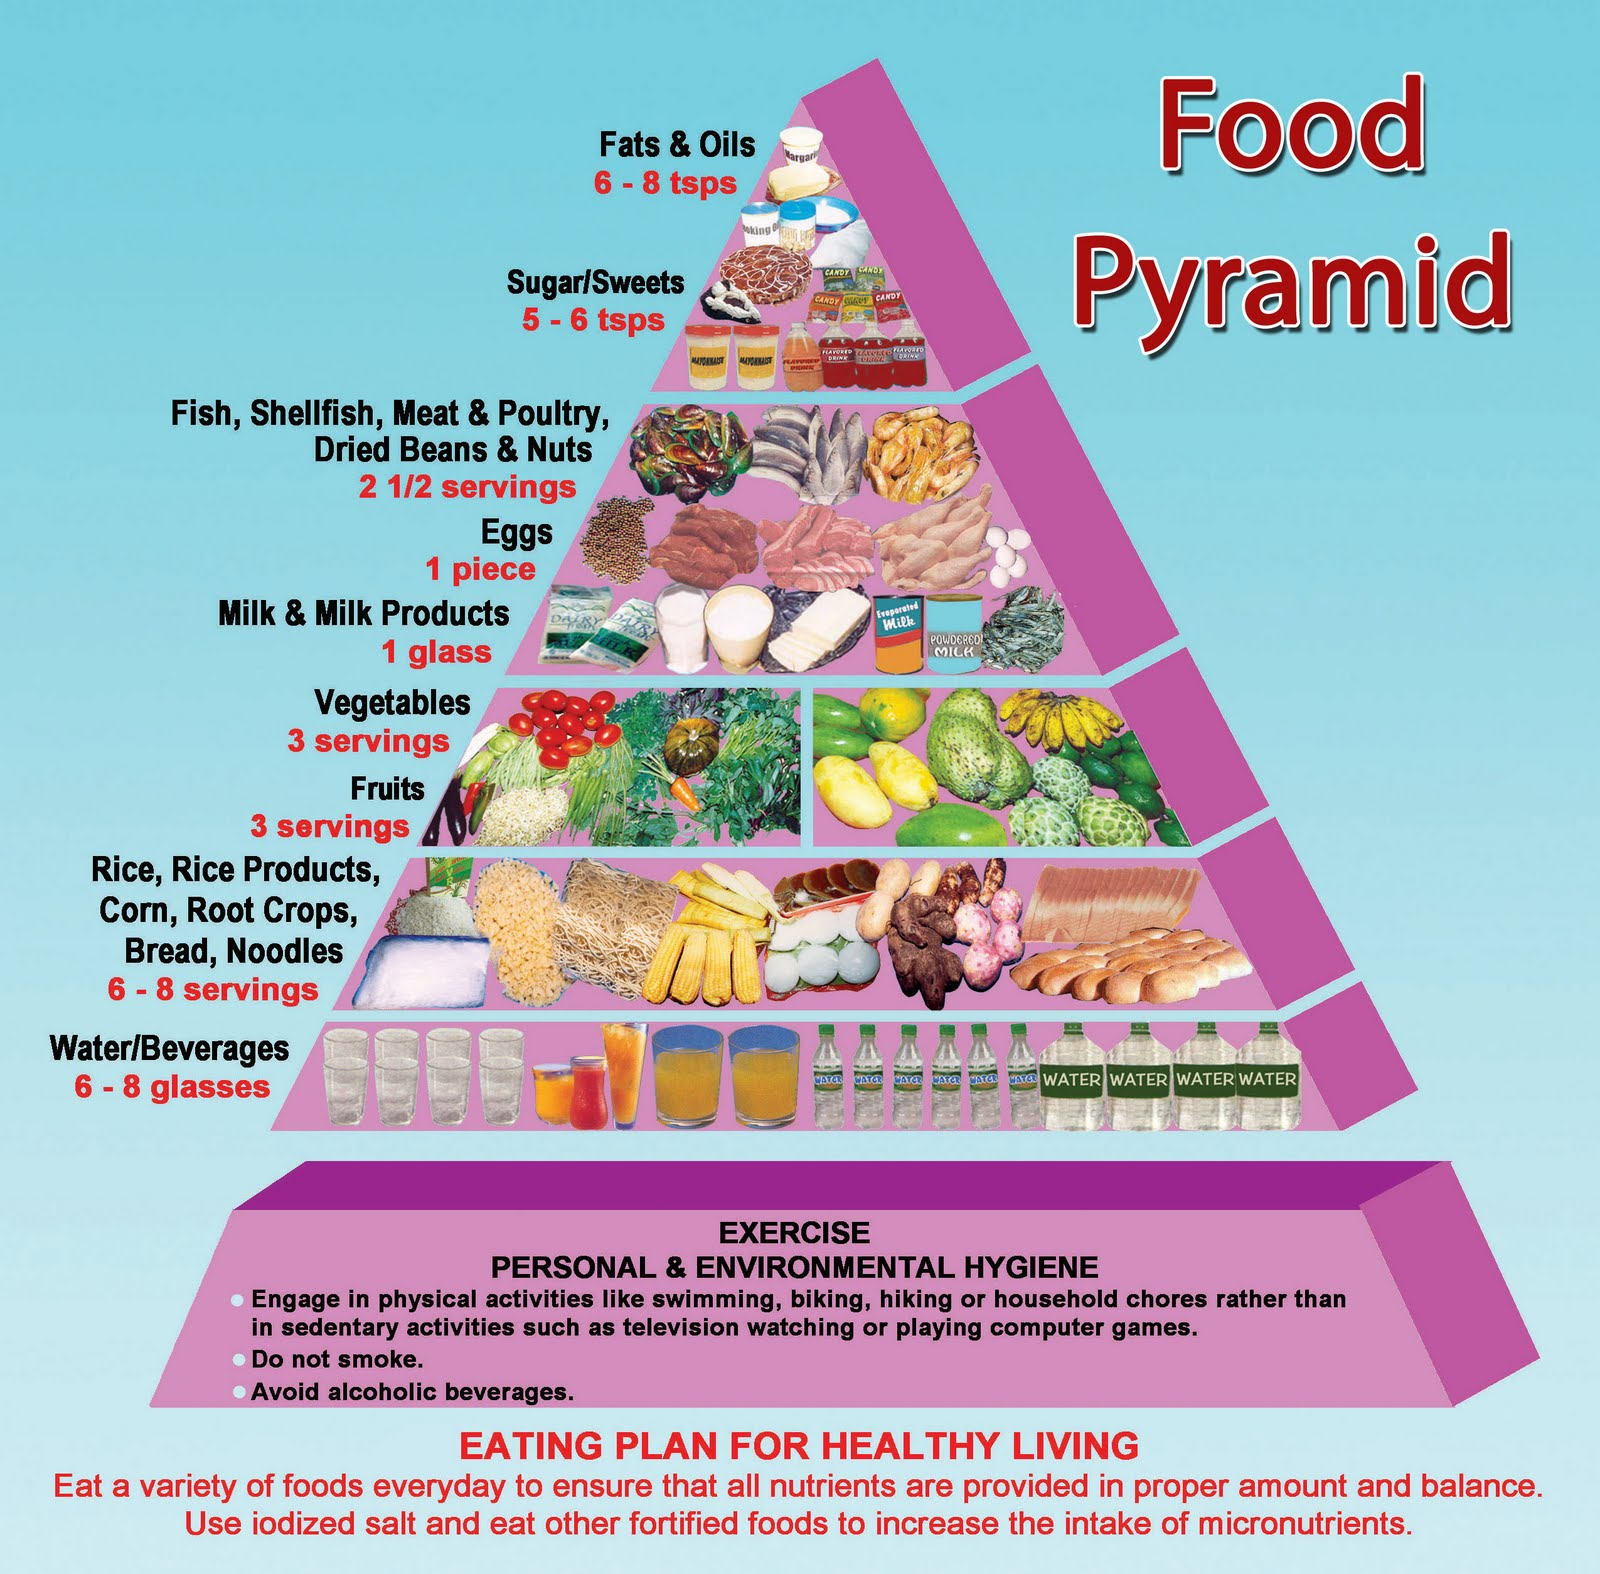 Food Pyramid Printable That Are Clean